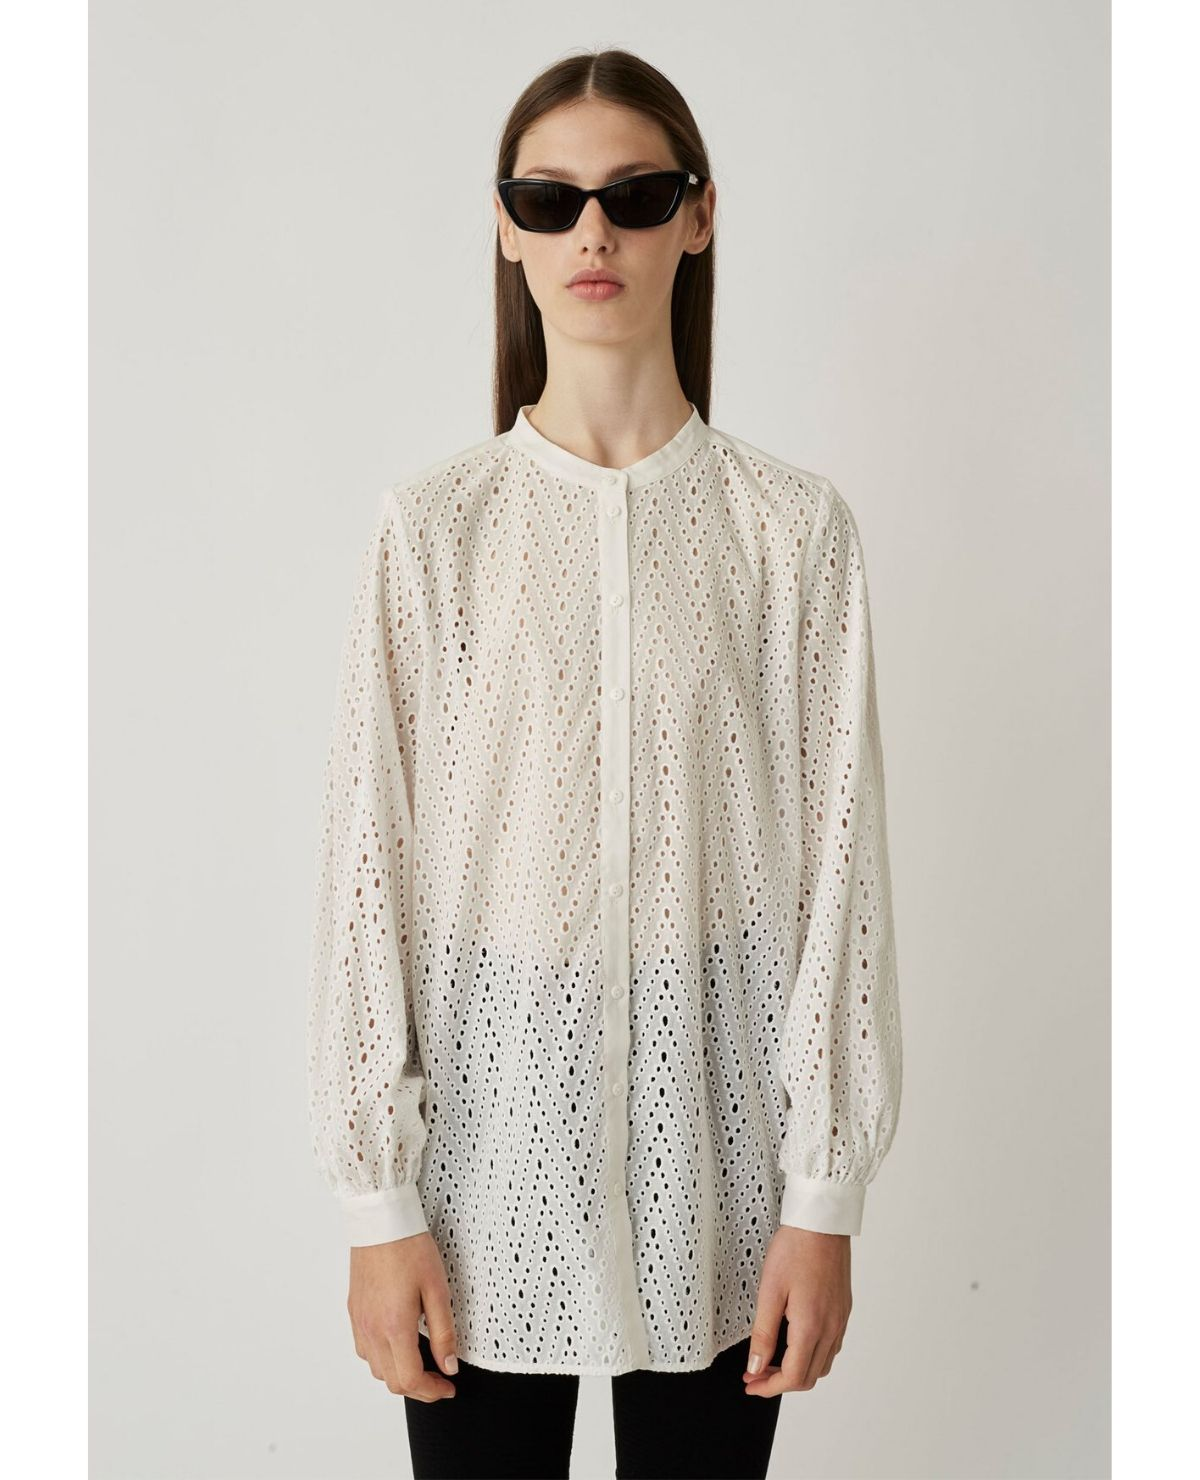 JUST FEMALE Naila Shirt / Brilliant White